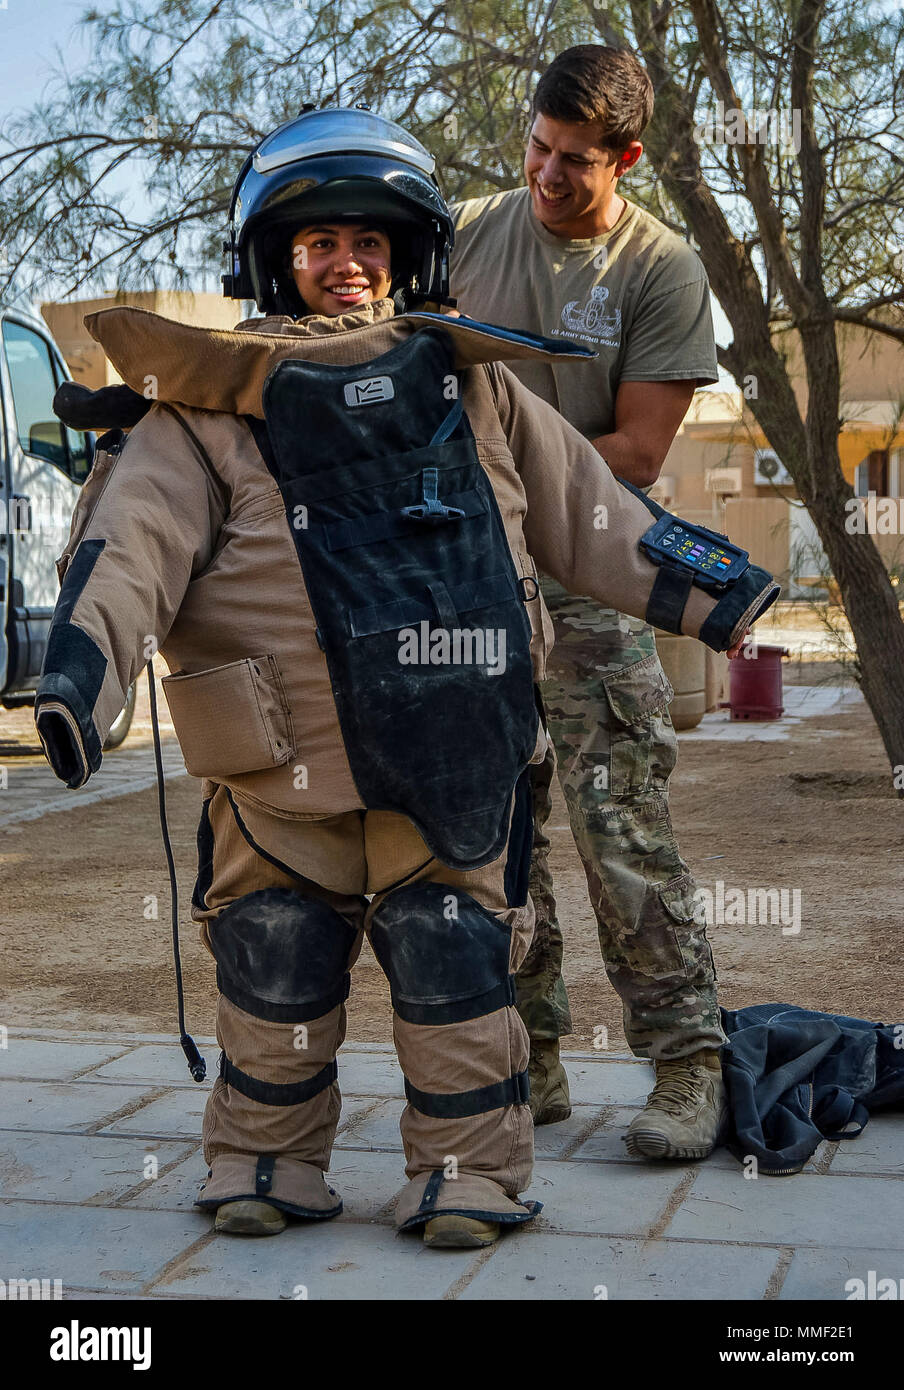 Spc Angela Lechuga A U S Army Reserve Soldiers From The 341st Military Police Company Of Mountain View California Tries On A Bomb Suit During Training On Explosive Ordnance Disposal Conducted By The